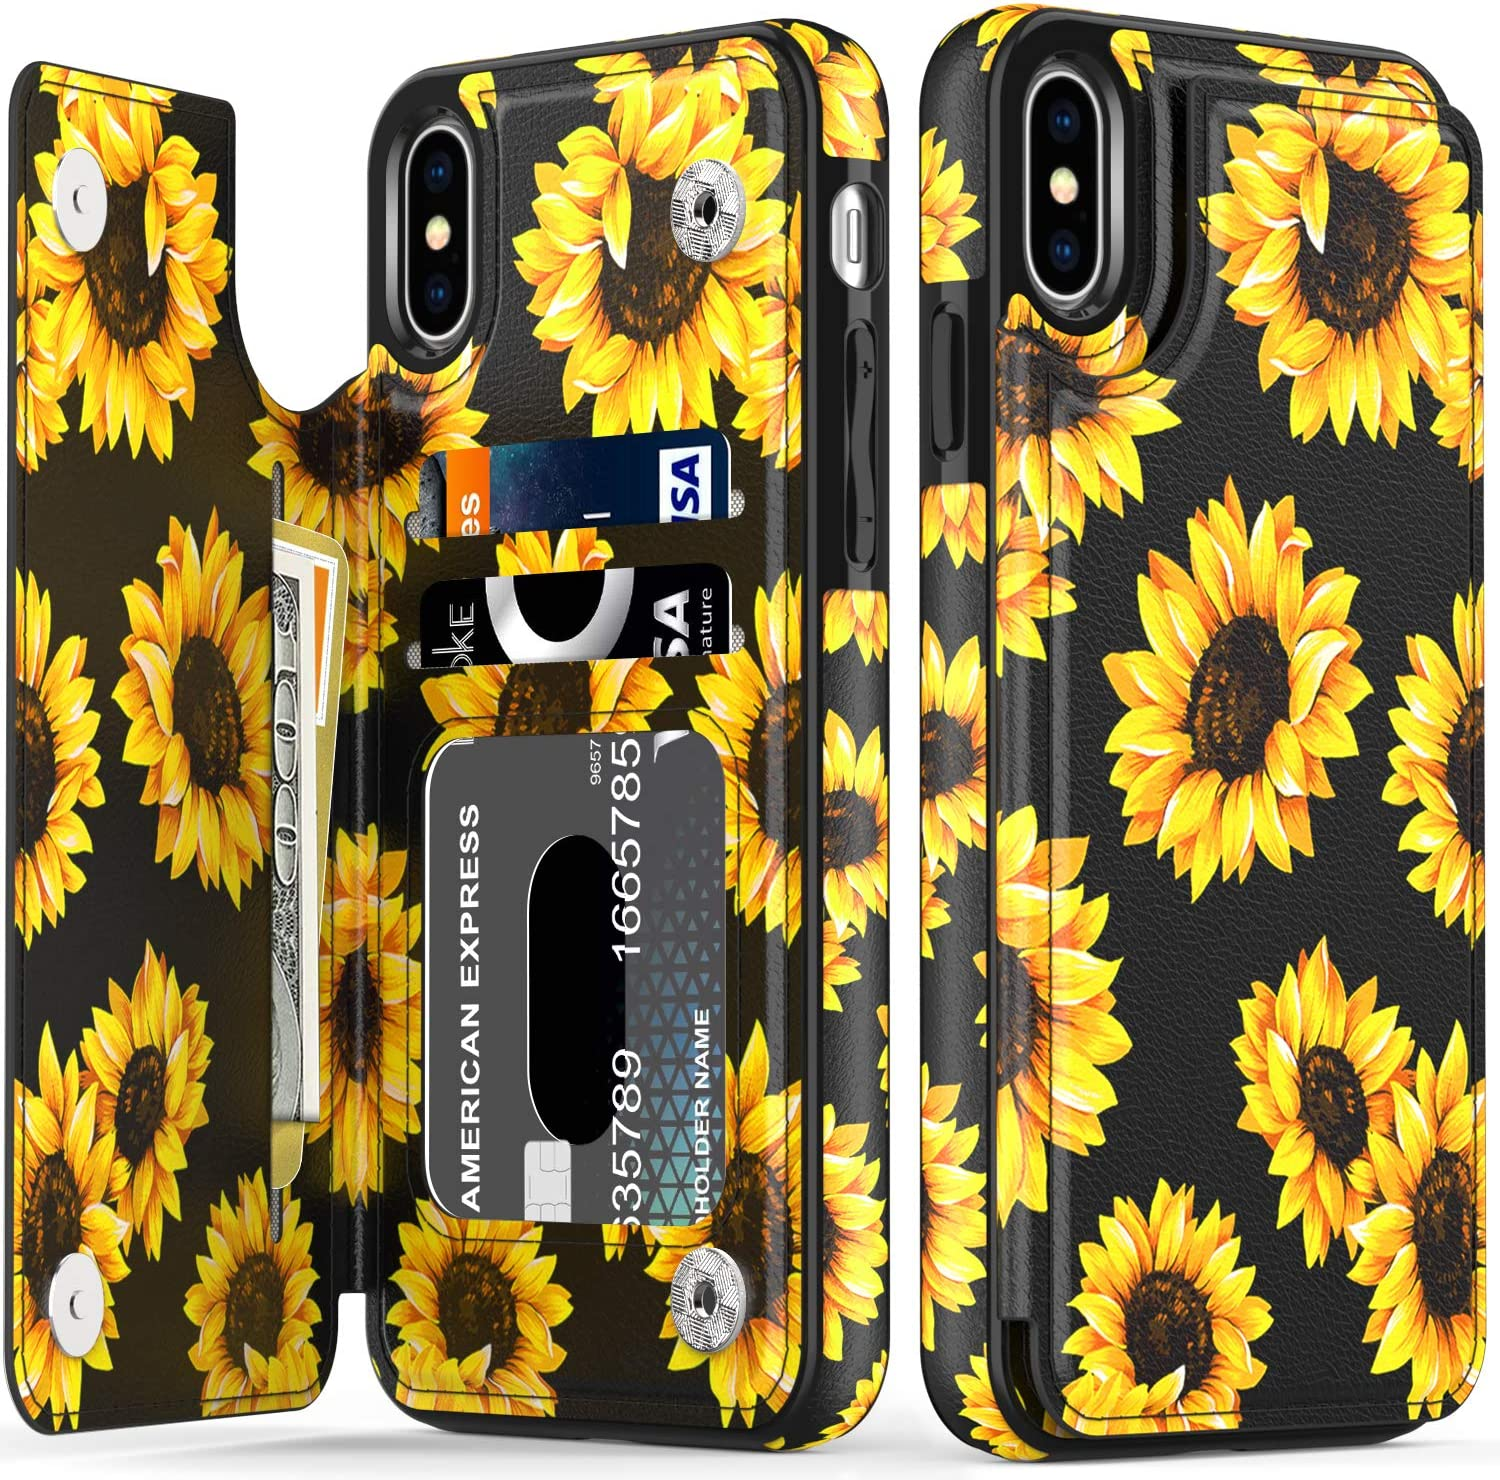 LETO iPhone X Case,iPhone Xs Case,Leather Wallet Case with Fashionable Flower Designs for Girls Women,Flip Folio Cover Kickstand Card Slots,Protective Phone Case for iPhone X/Xs Blooming Sunflowers